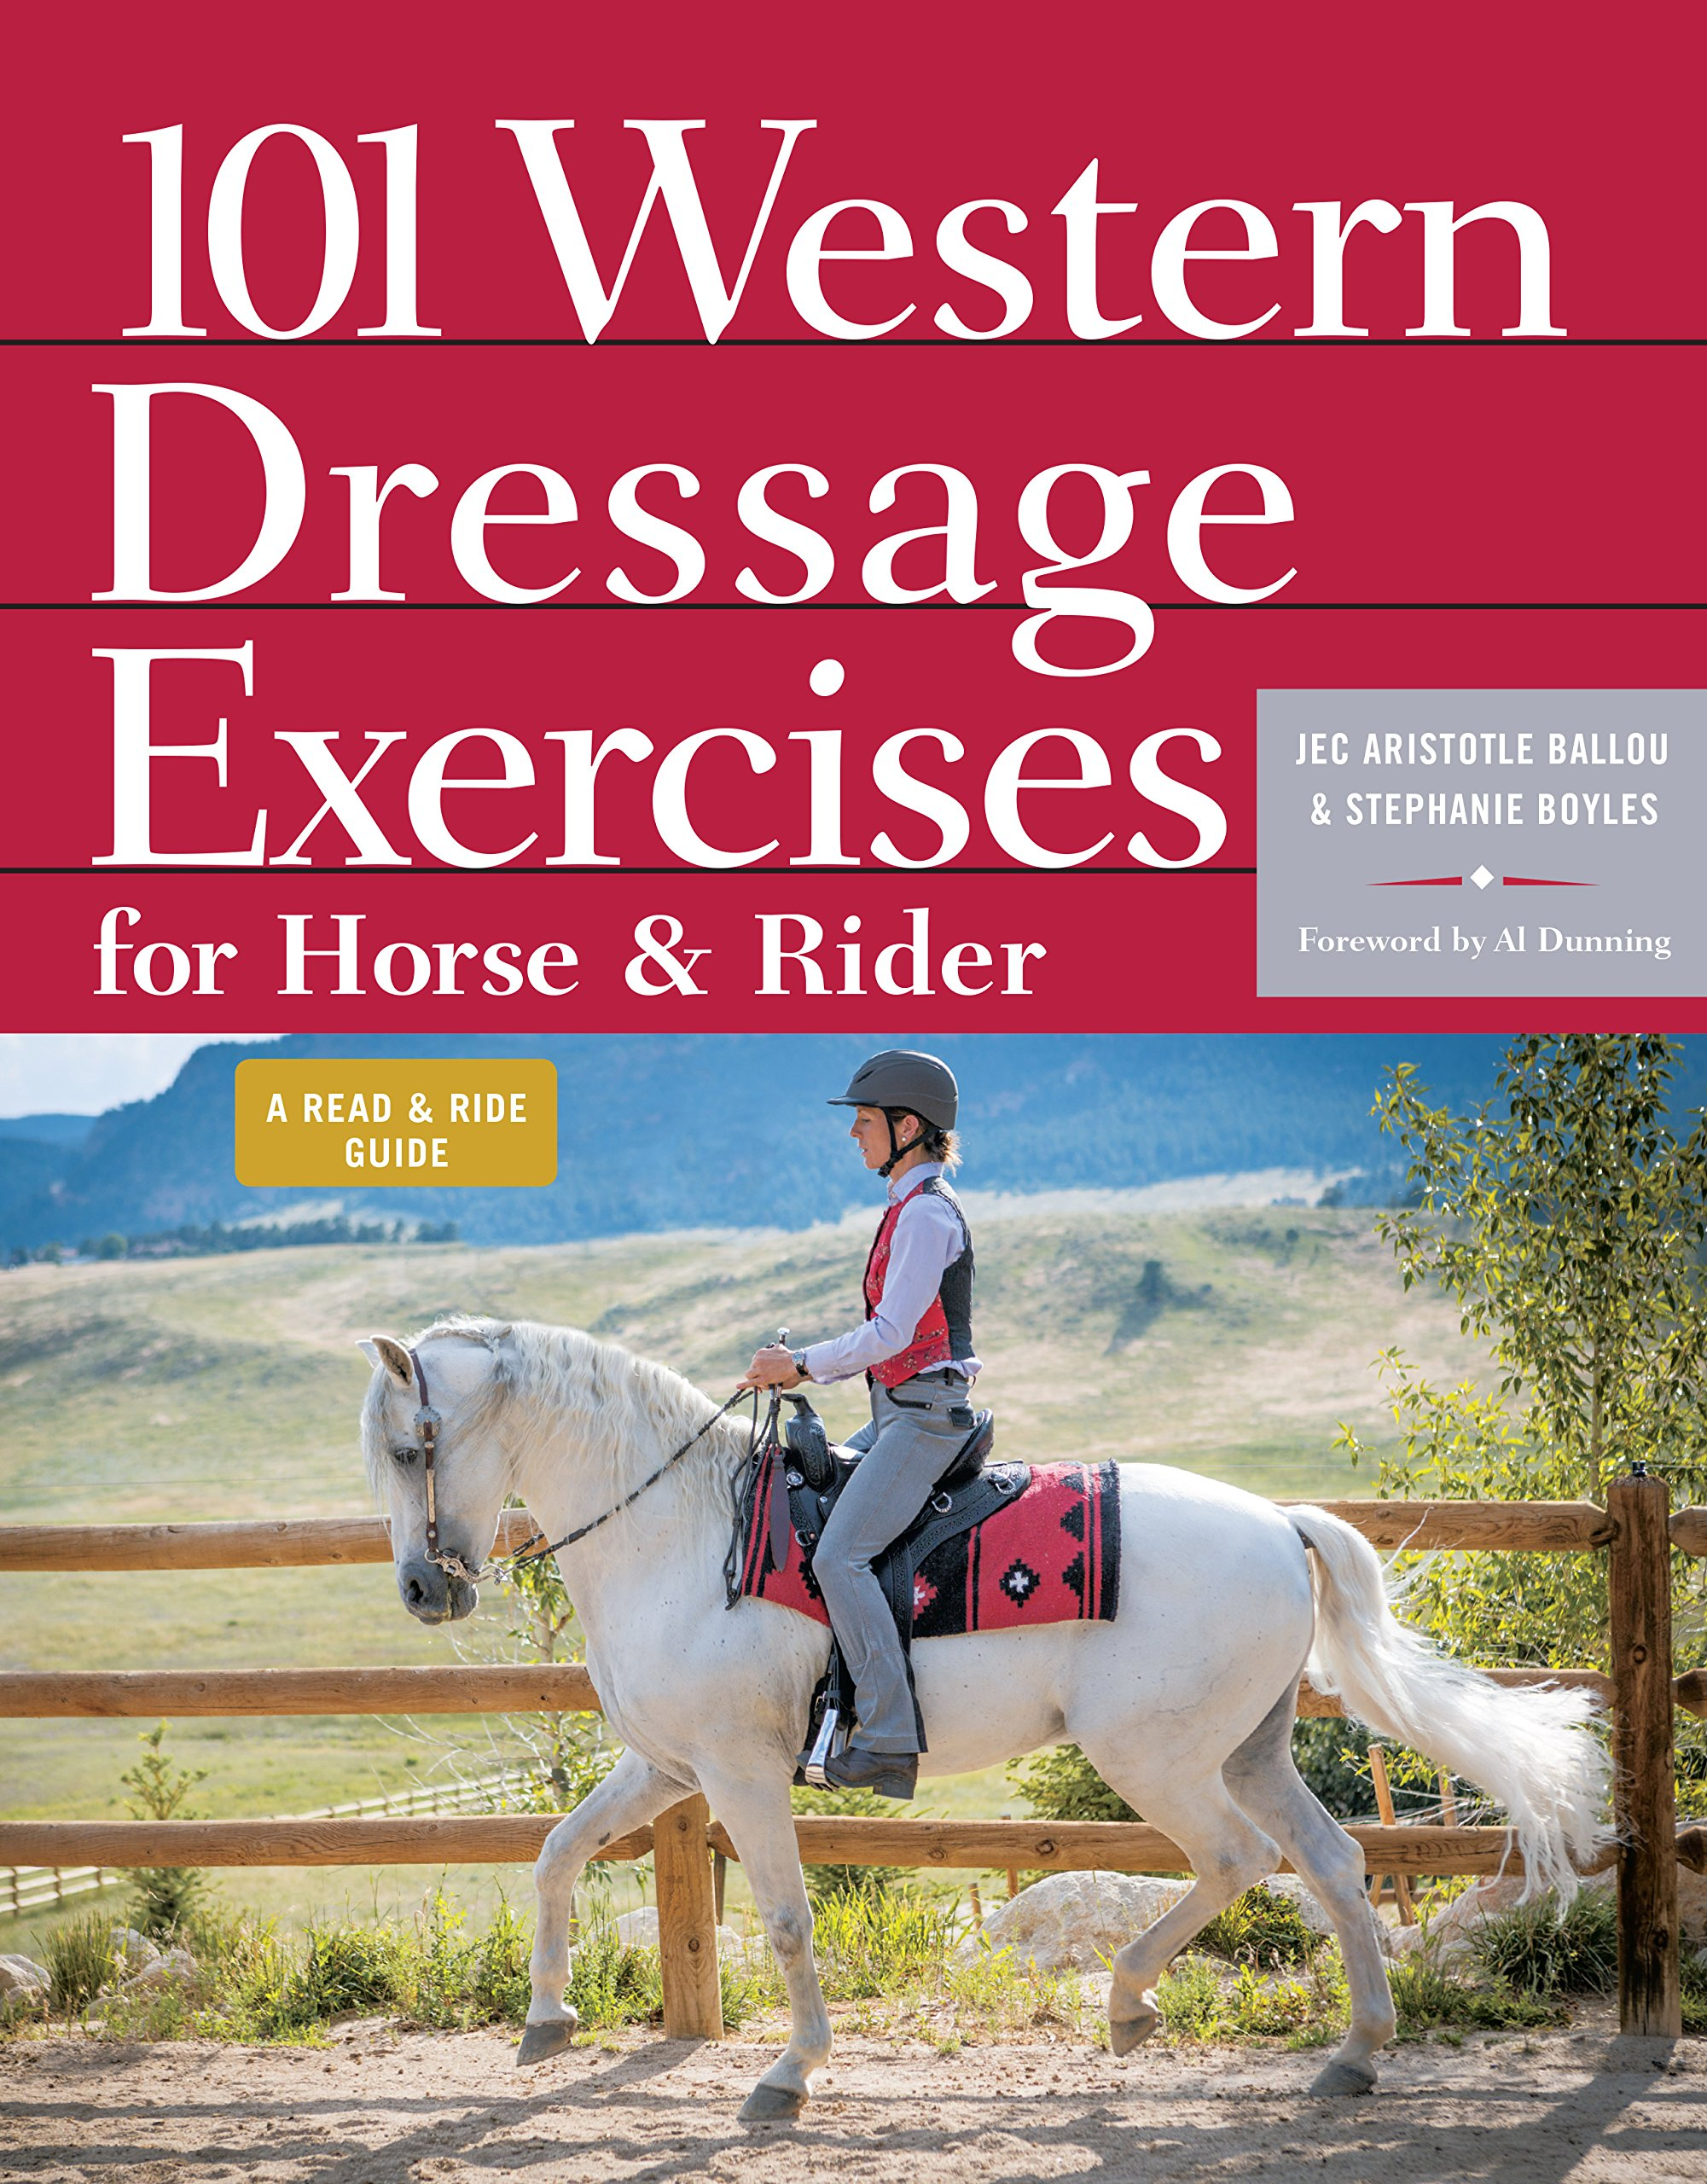 101 Western Dressage Exercises for Horse & Rider (Read & Ride): Jec  Aristotle Ballou, Stephanie Boyles, Al Dunning: 9781612121703: Amazon.com:  Books